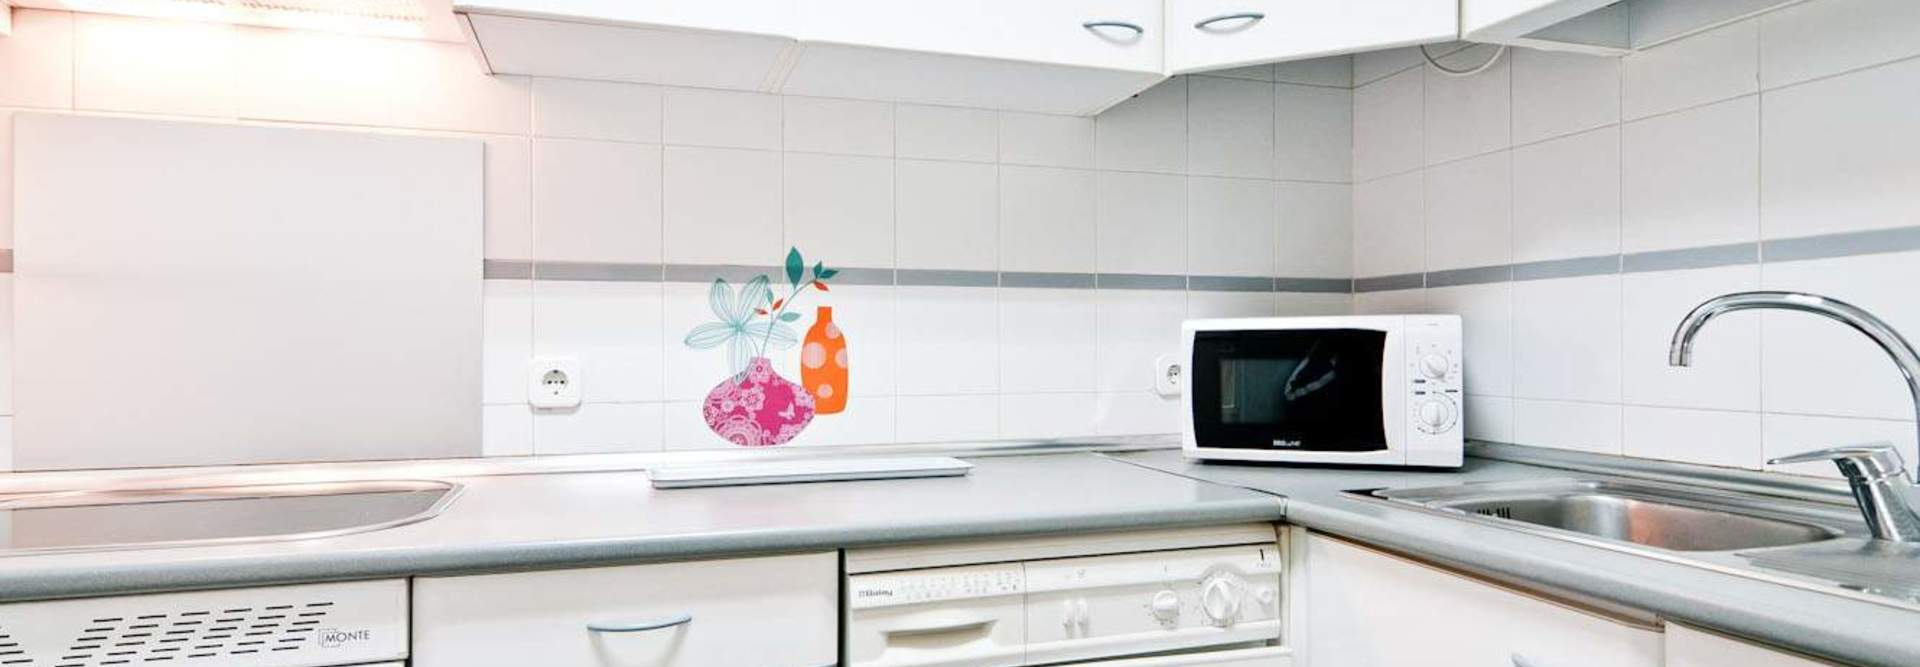 Home alquiler apartamento madrid centro mad4rent  5